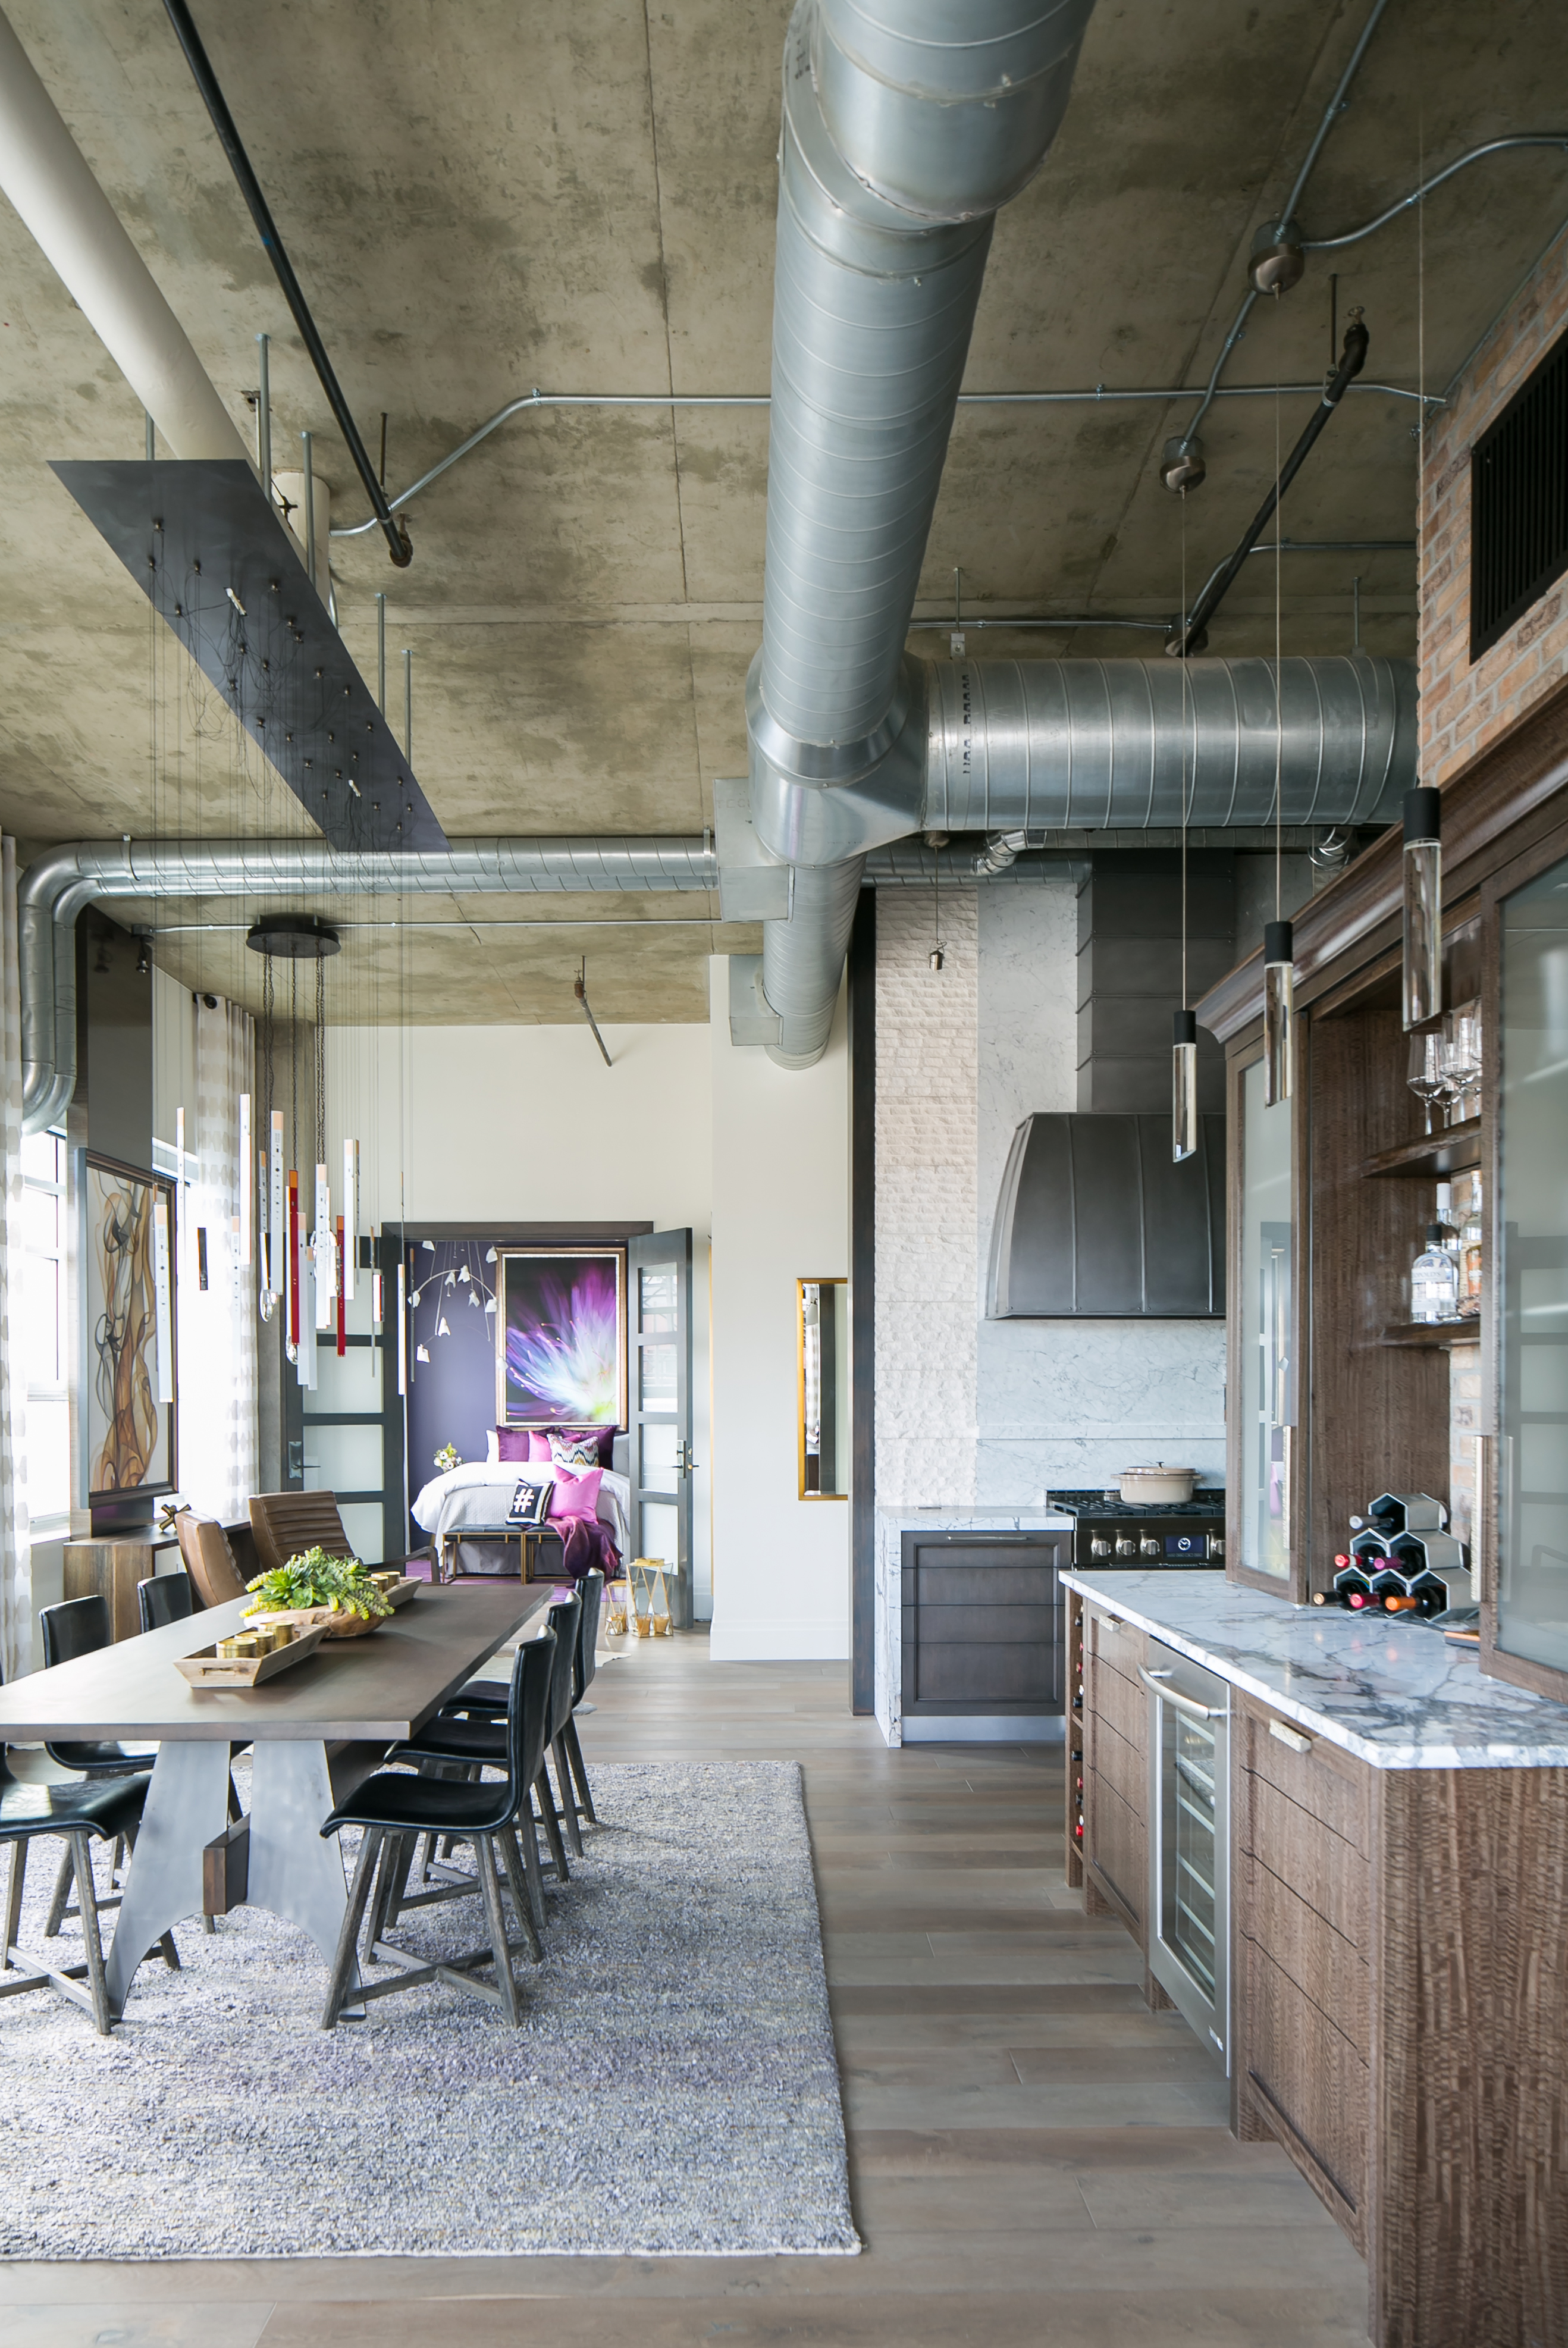 Kitchen Design Showroom Denver Co Downtown Denver Loft Exquisite Kitchen Design Portfolio